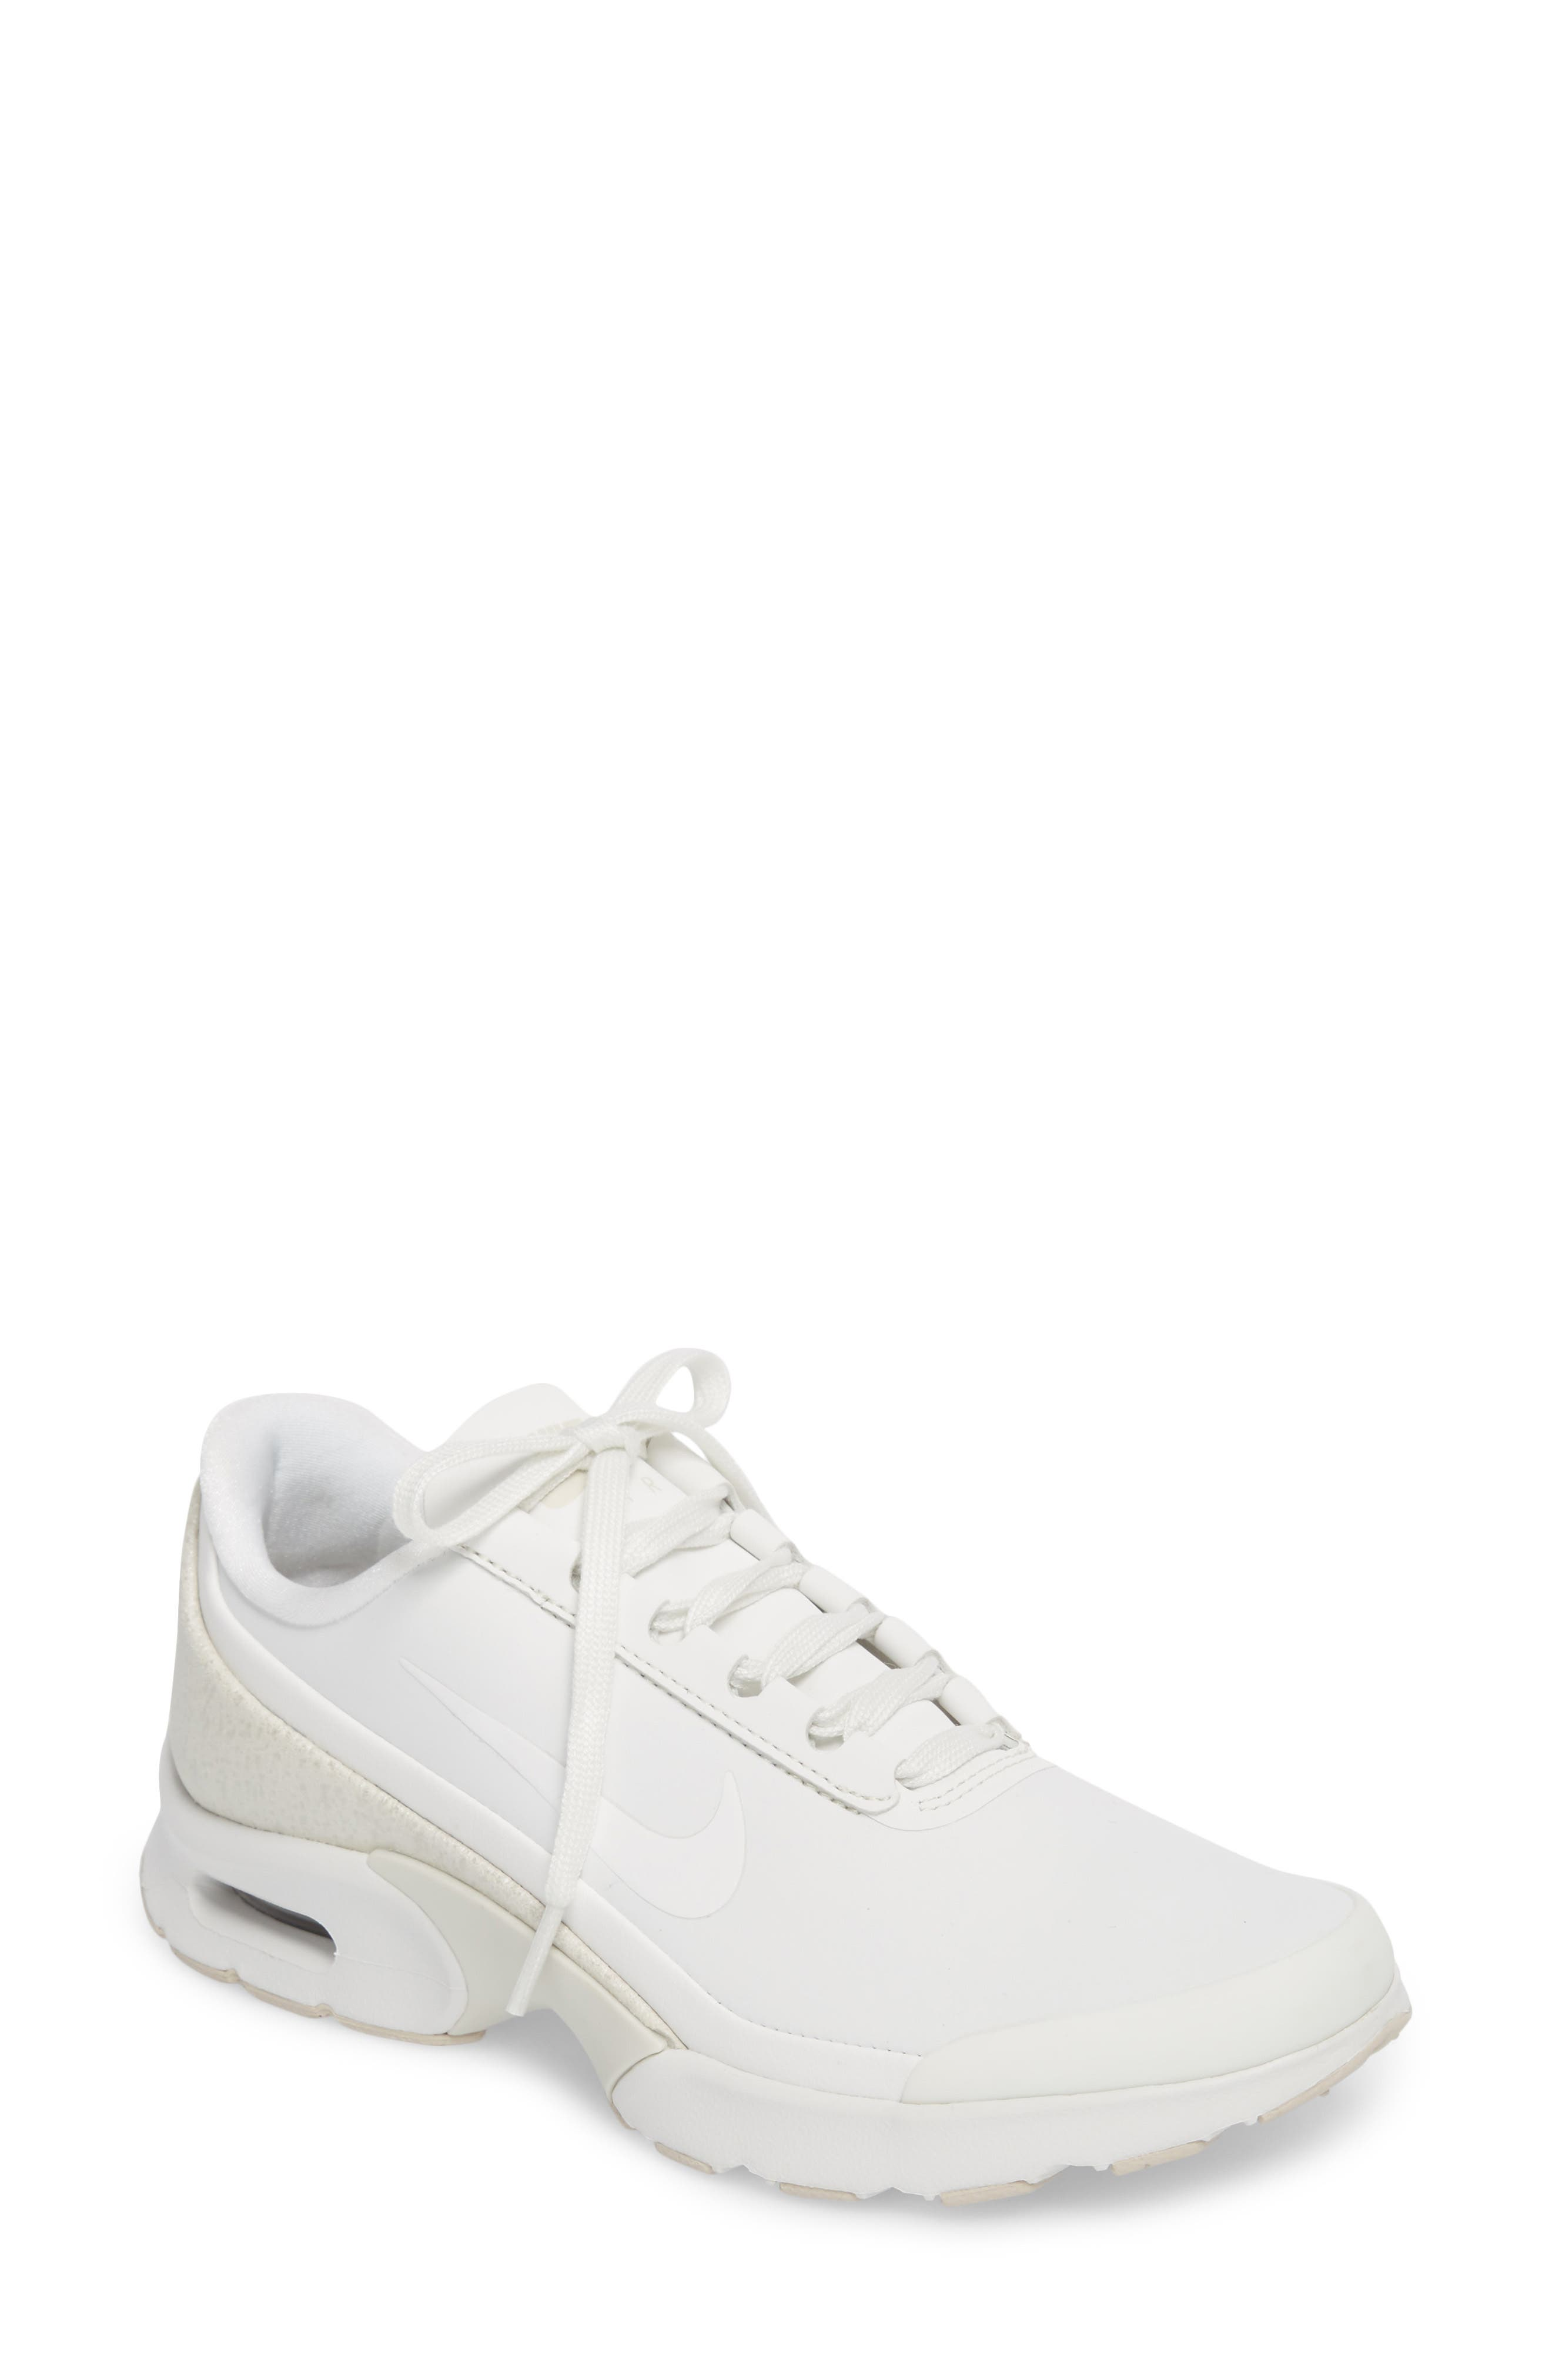 Air Max Jewell Sneaker,                         Main,                         color, Summit White/ Summit White